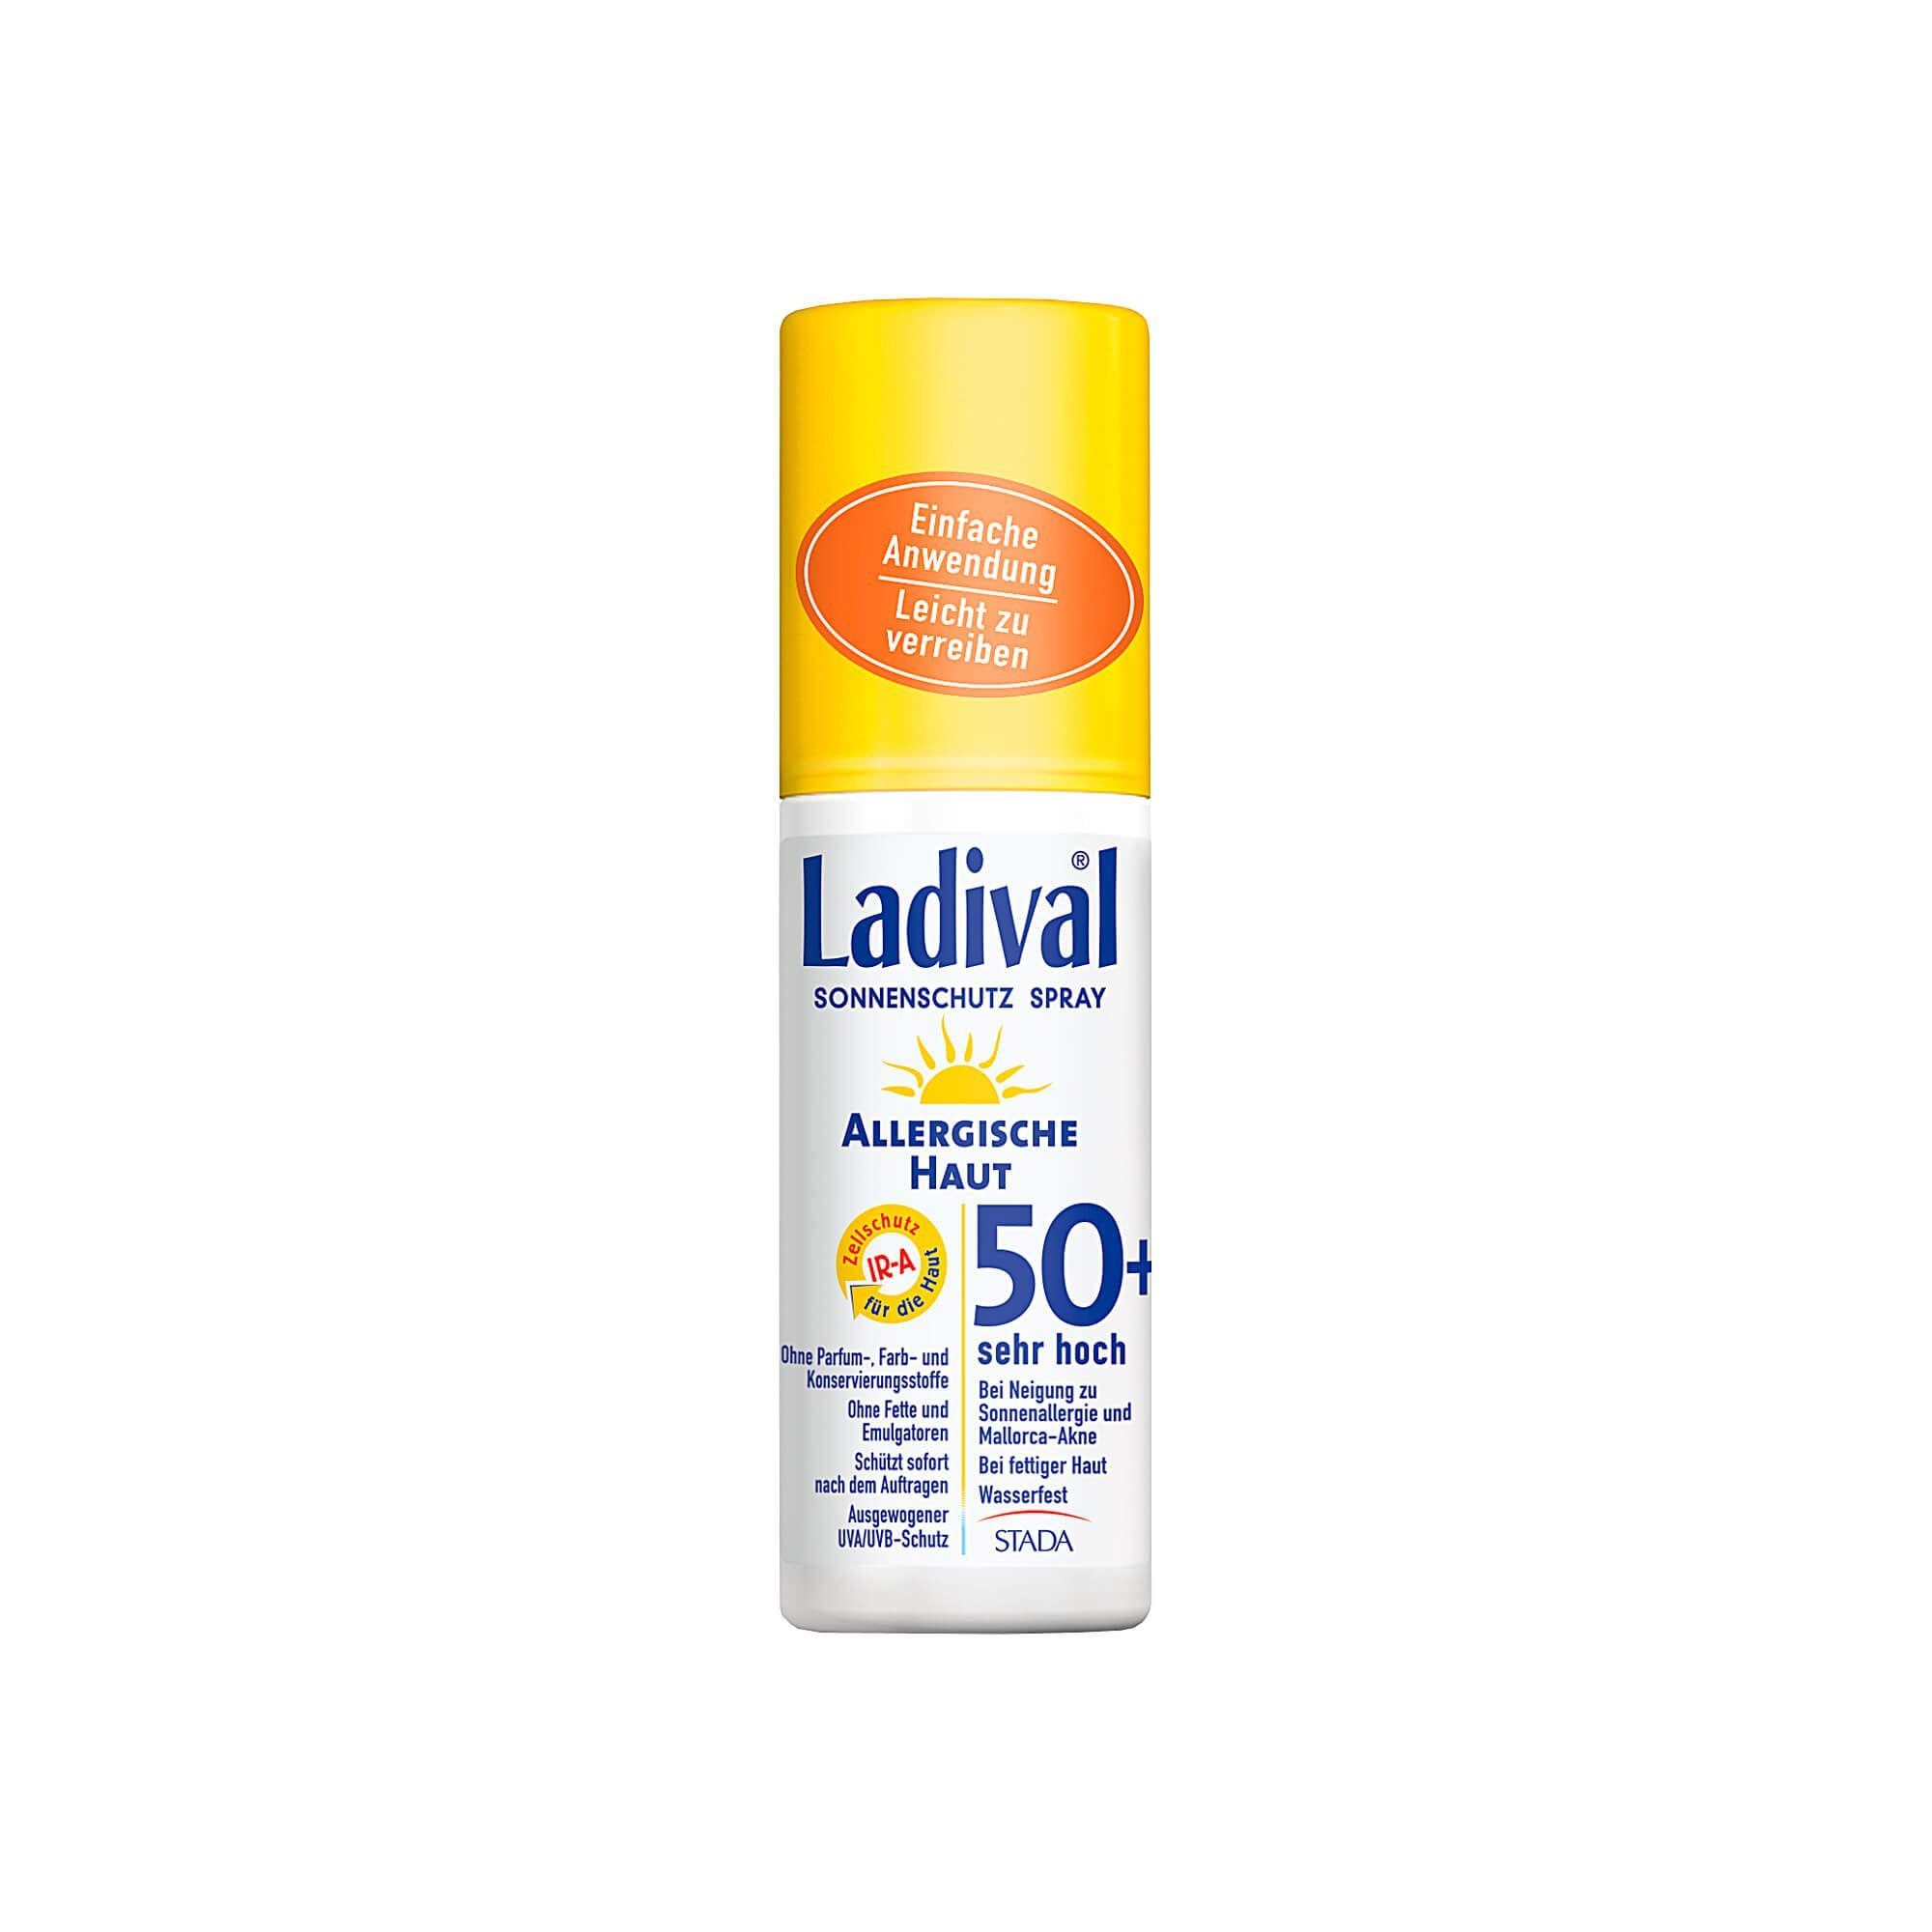 Ladival Allergische Haut Spray LSF 50+ , 150 ml